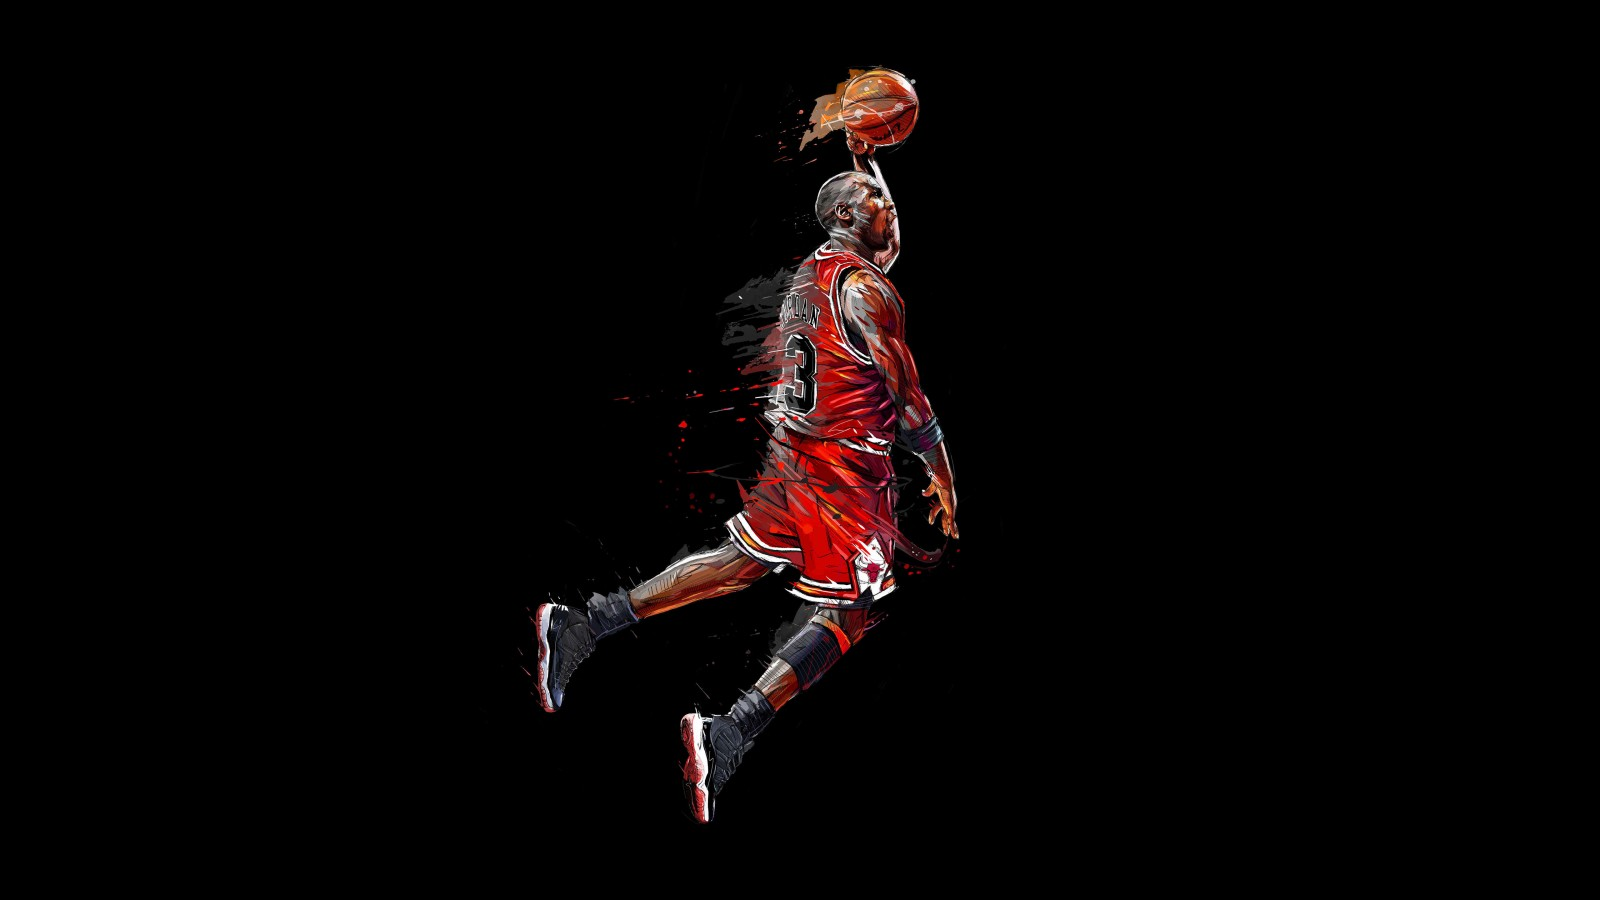 Basketball Wallpaper Iphone Michael Jordan Artwork 5k Wallpapers Hd Wallpapers Id